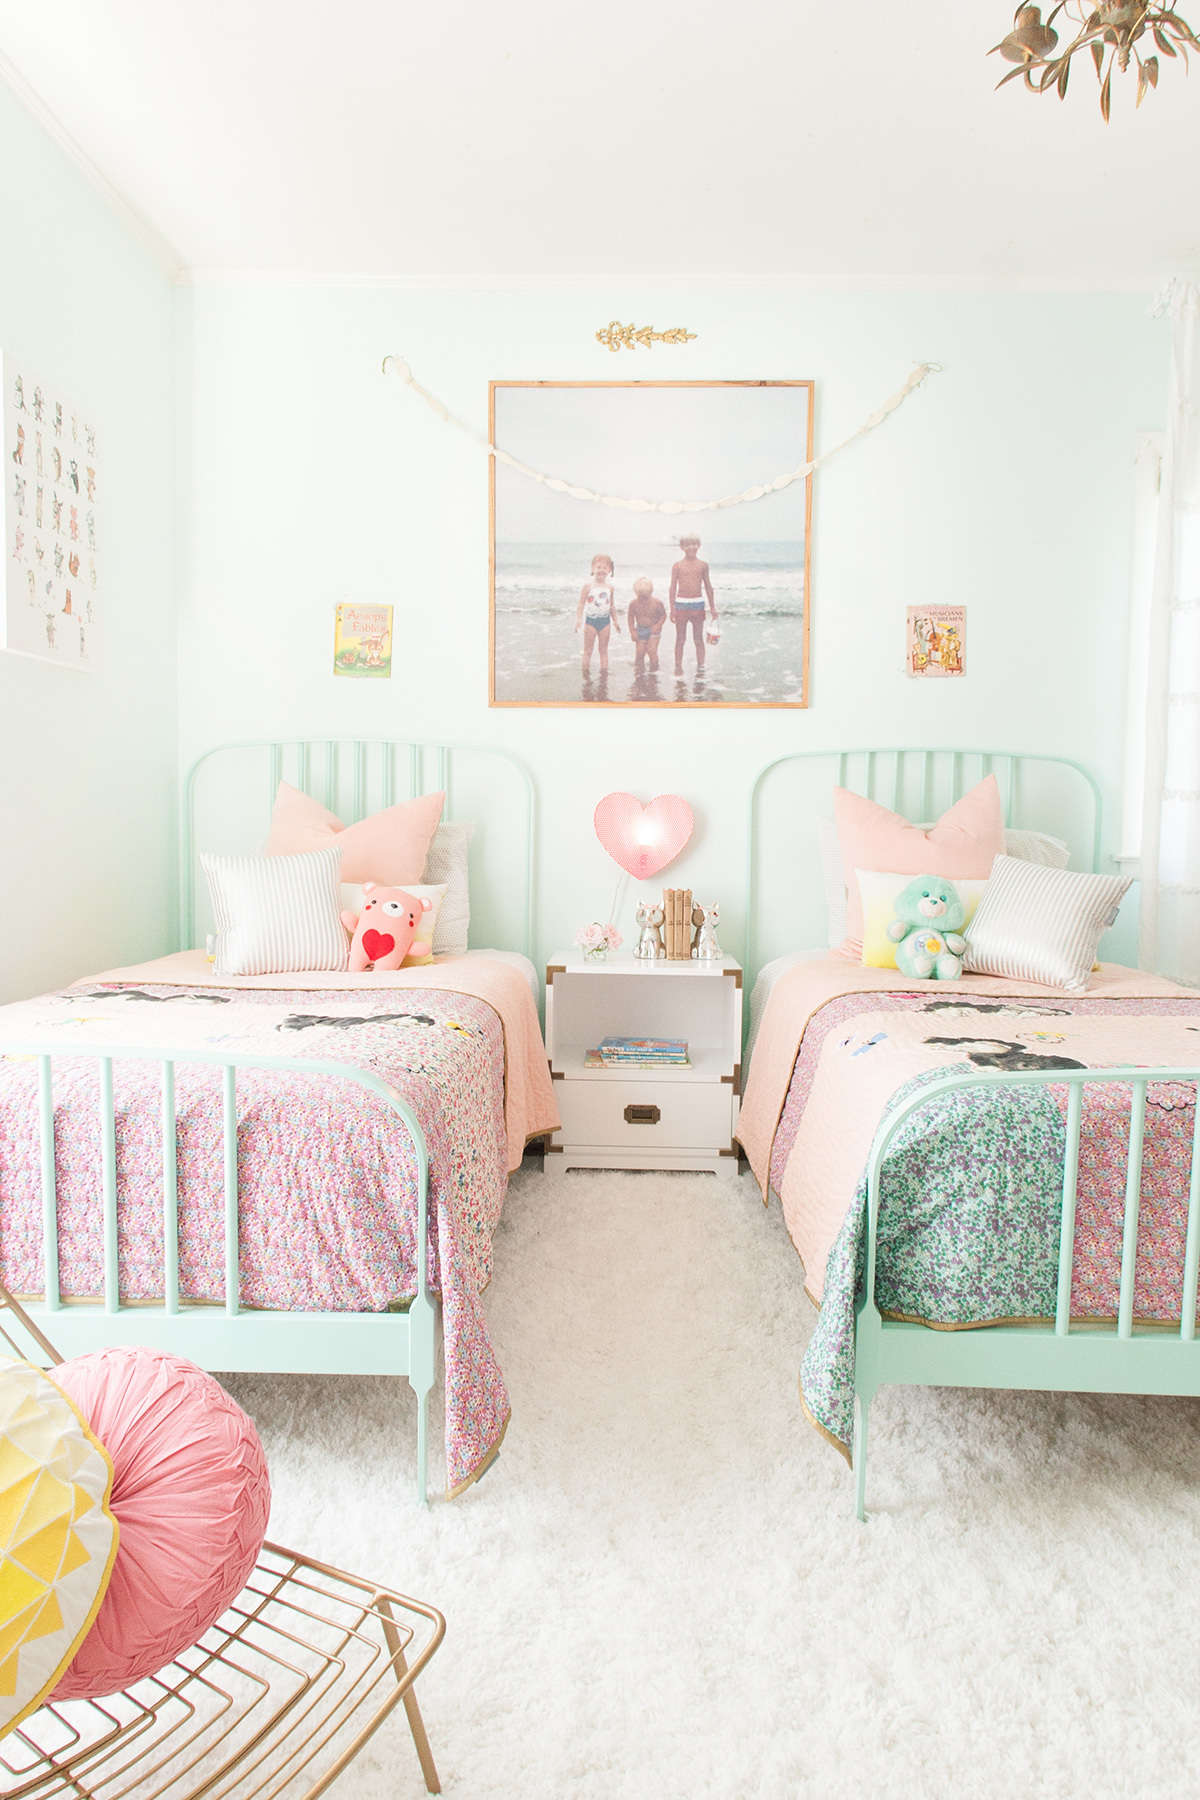 shared girl bedroom